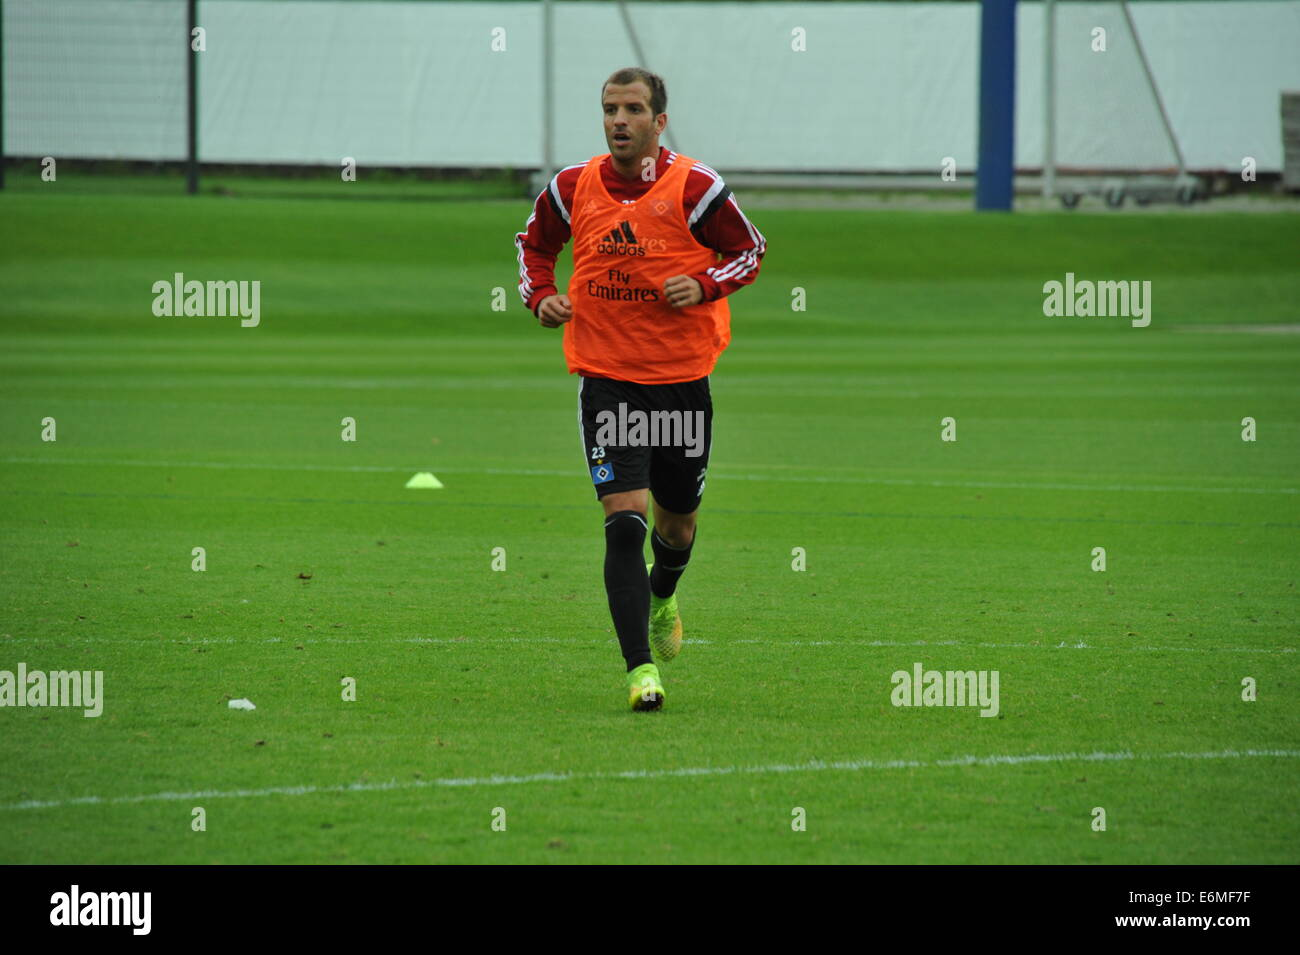 Rafael van der Vaart im HSV-Training, Hamburg, Deutschland. Editorial use only. Stock Photo